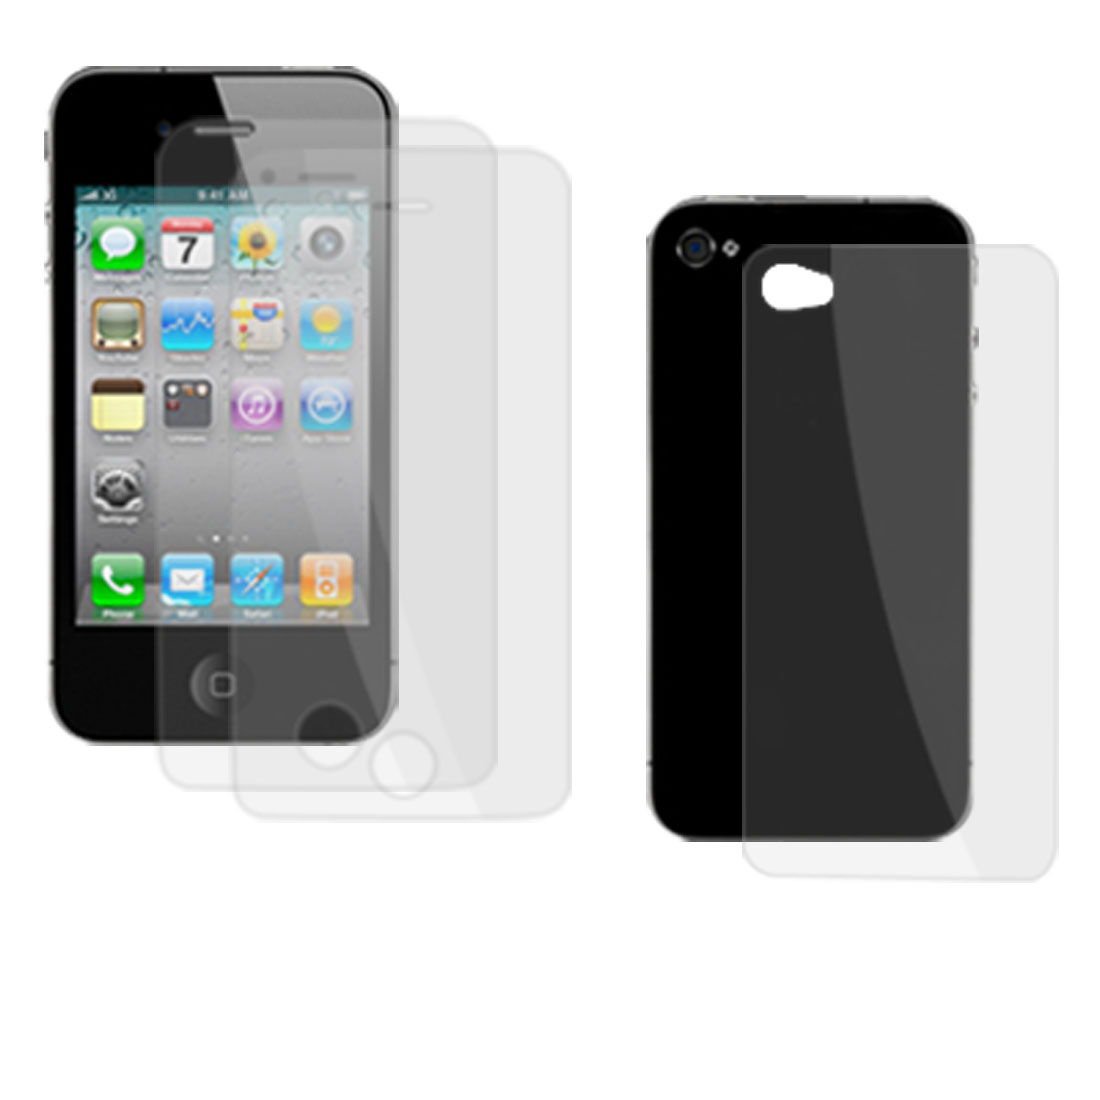 3 Pcs Clear Anti Dust LCD Screen Protectors for iPhone 4 4G